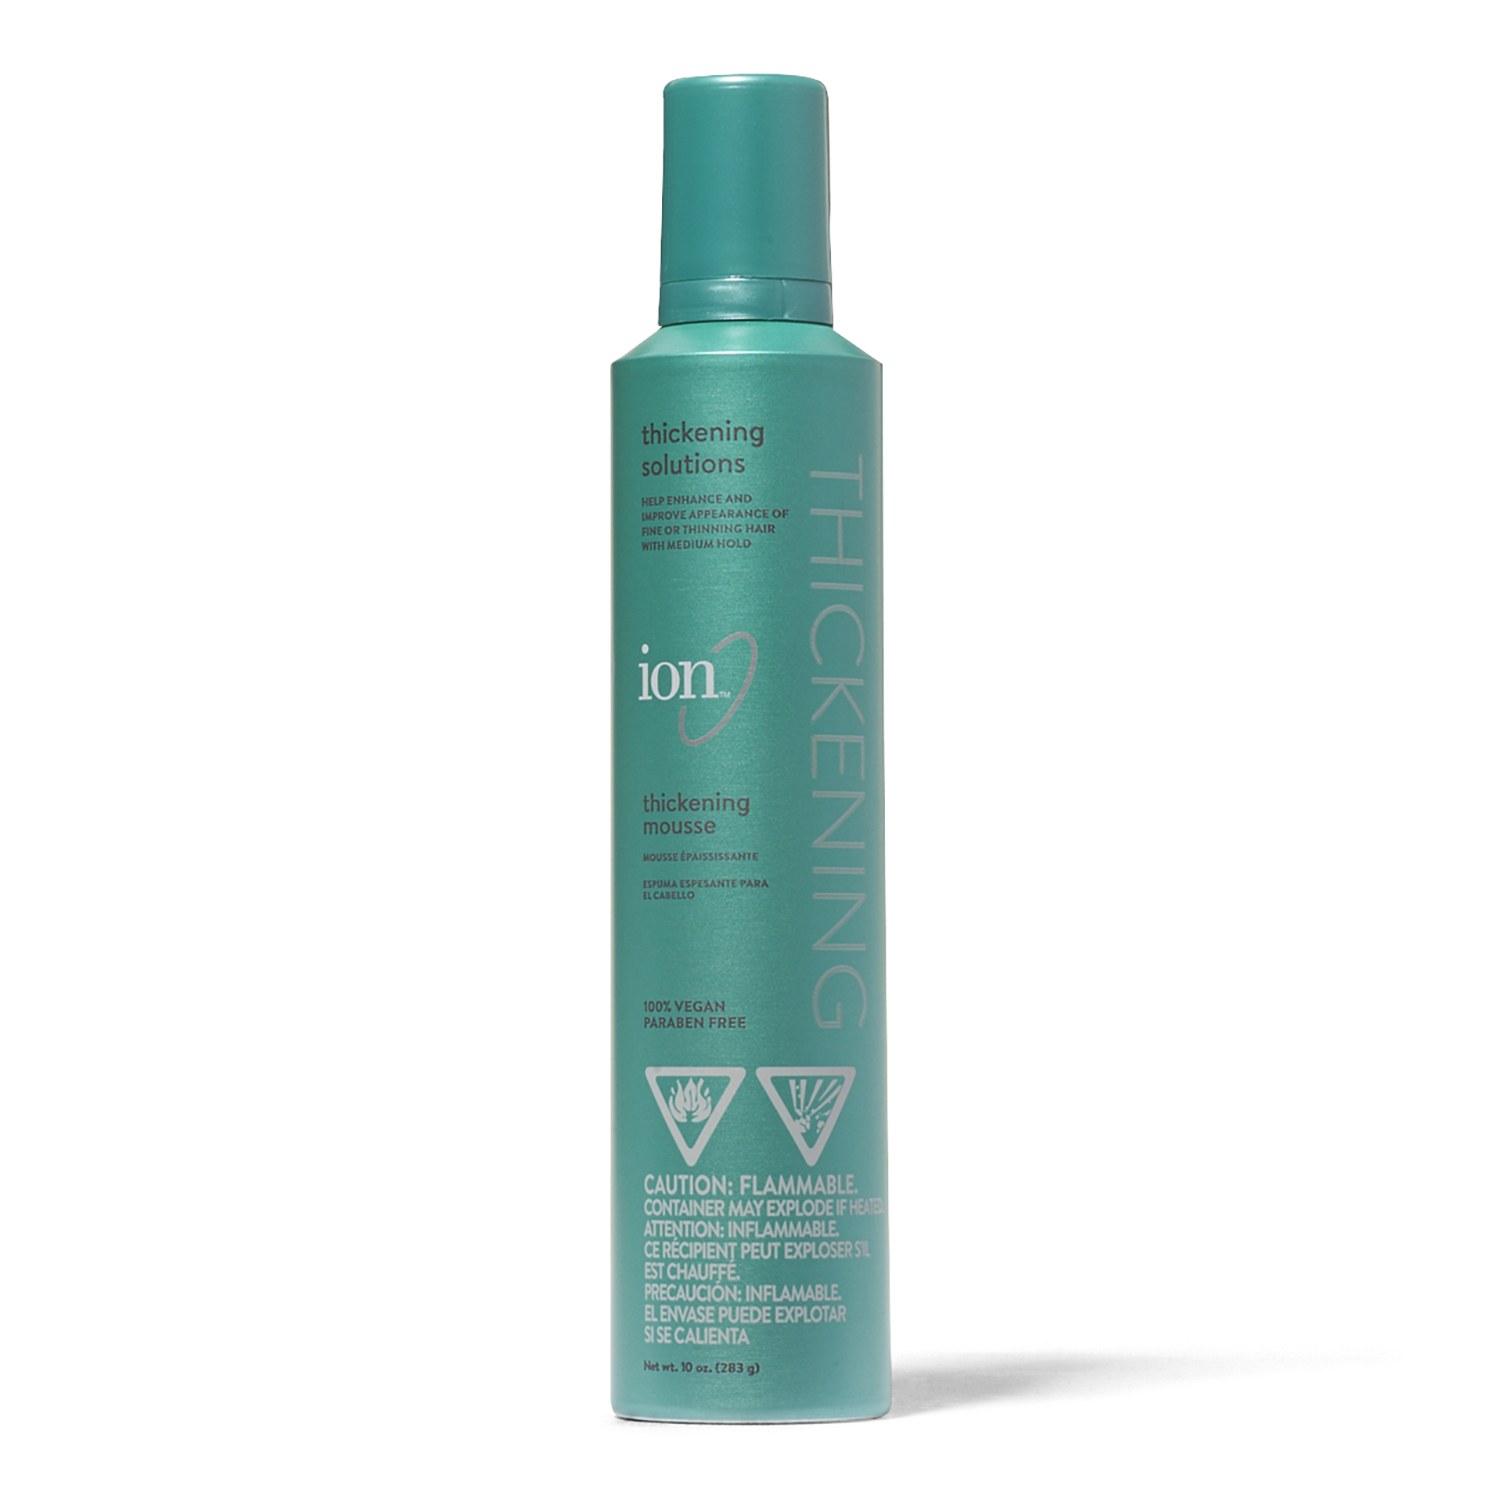 Ion Thickening Mousse